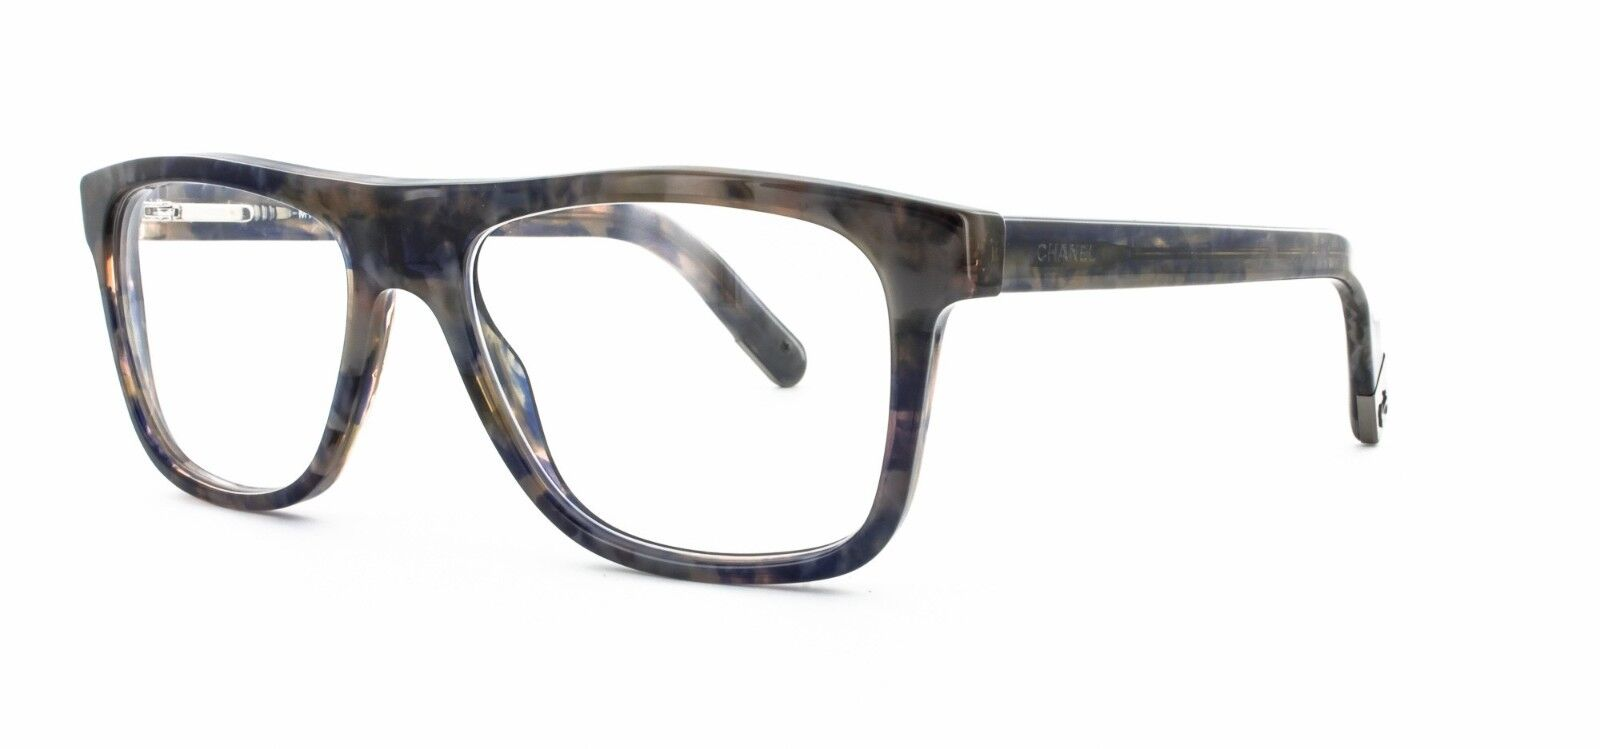 CHANEL Eyeglasses 3240 1392 Blue Two-tone Frames Authentic 52mm W ...